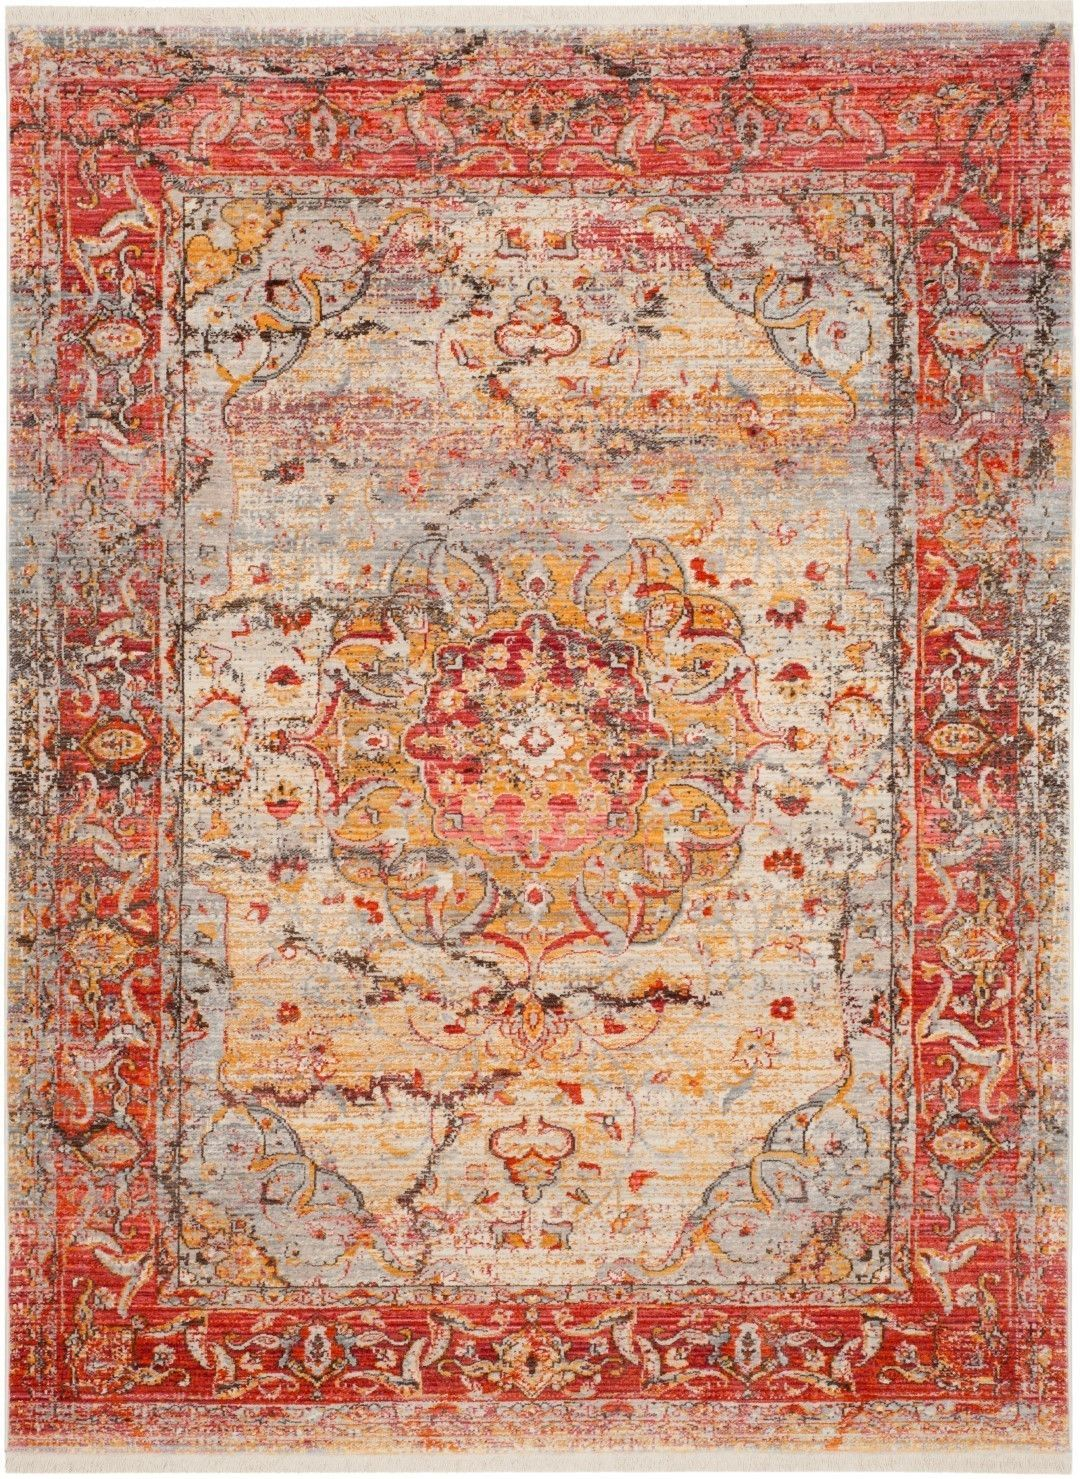 Features Vintage Persian Collection Material